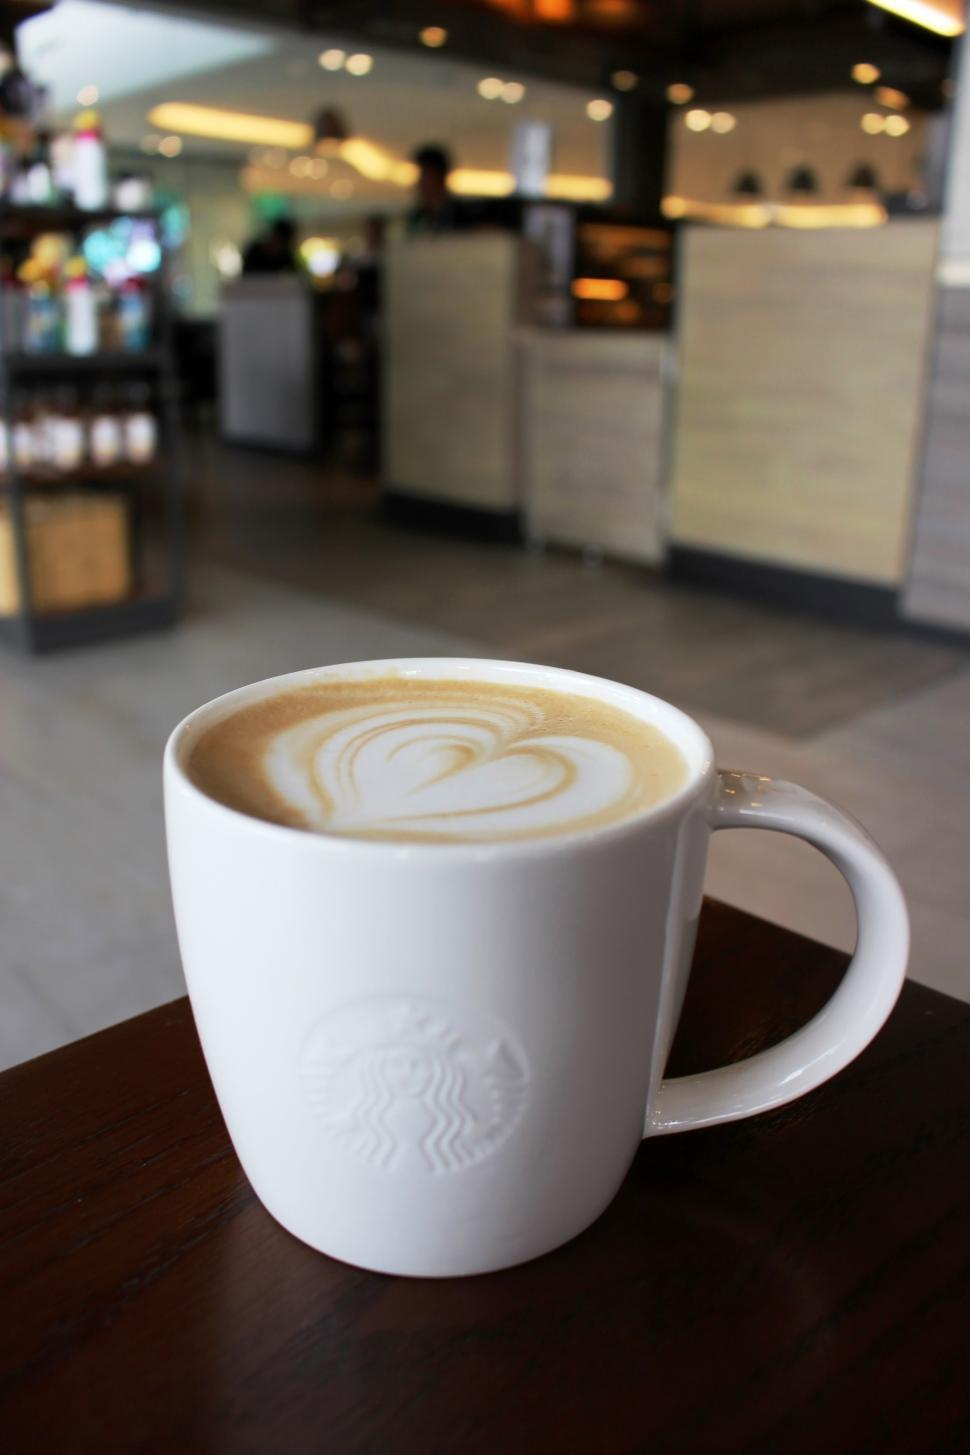 Download Free Stock HD Photo of Cup of Starbucks branded coffee  Online